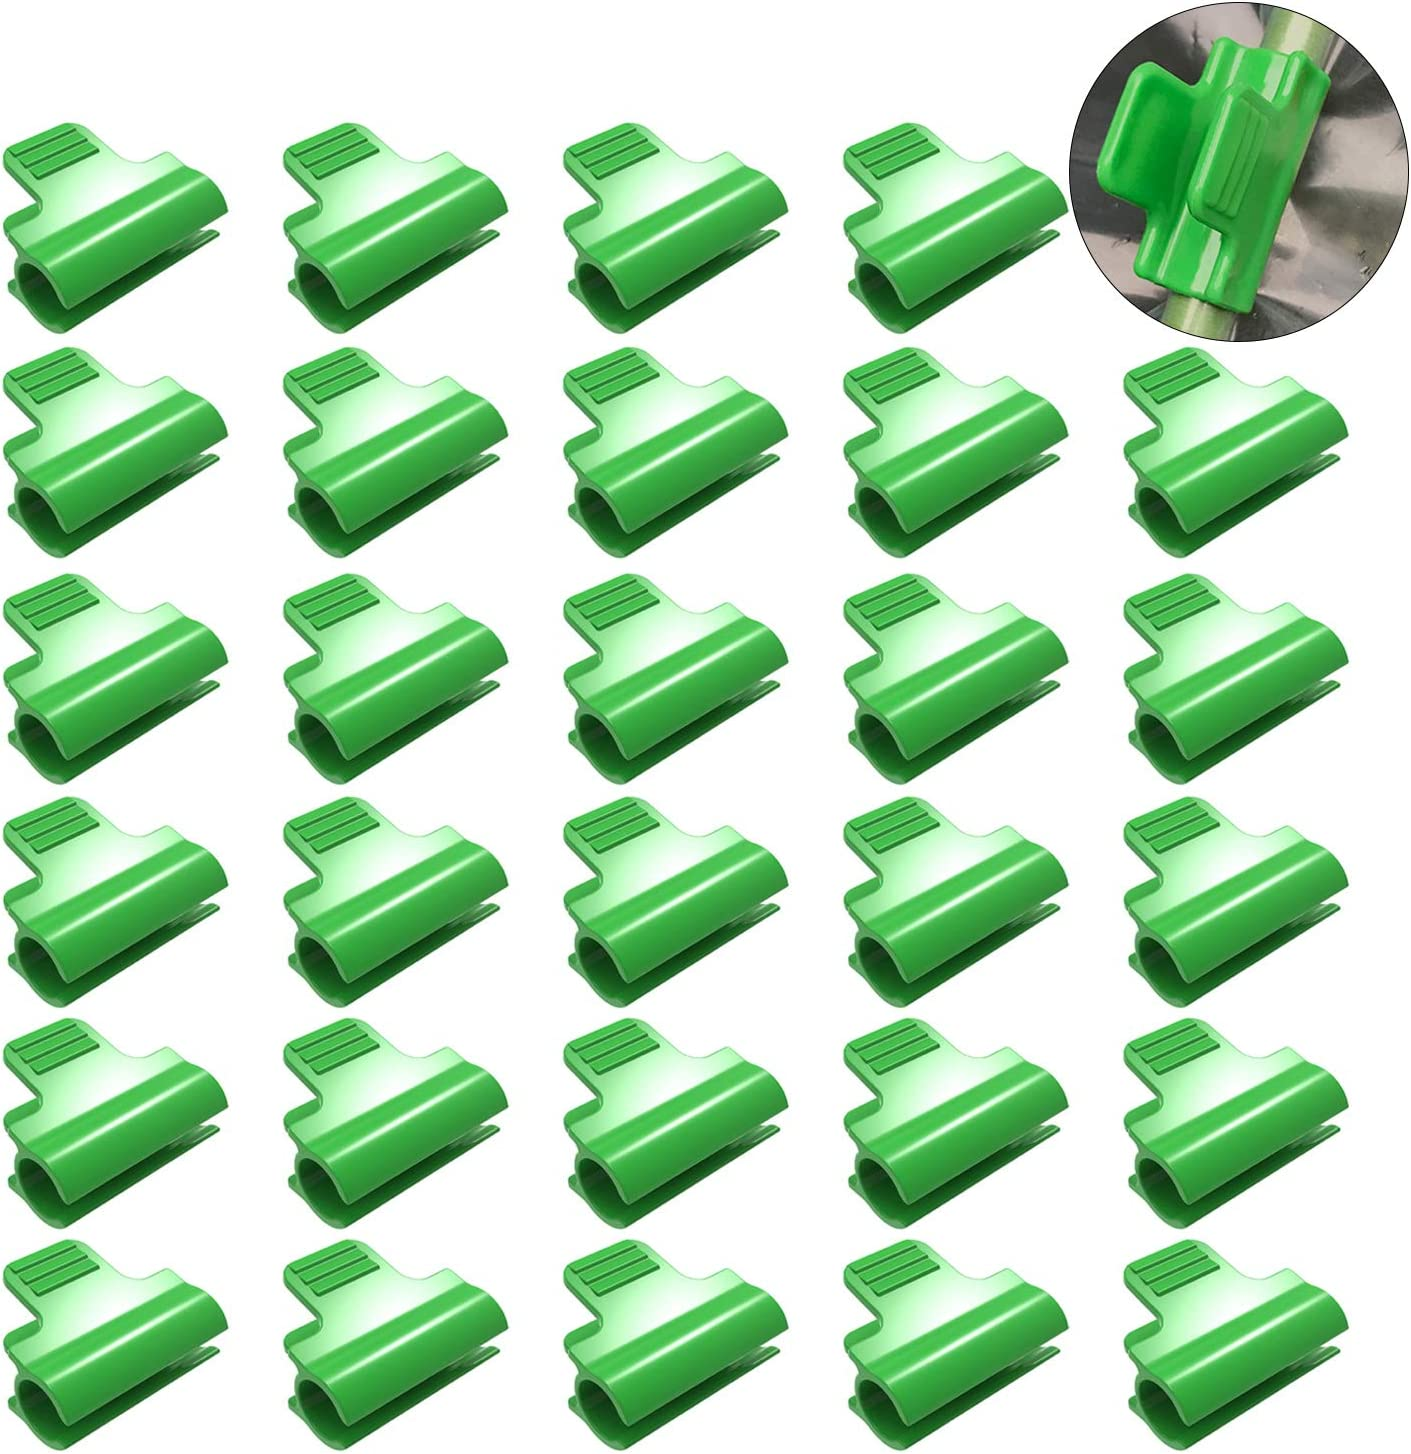 Sirozi 30 Pack Greenhouse Row Cover Clips, Greenhouse Netting Tunnel Hoop Clamps Extension Shed Film Frame Shading Net Rod Clip for 11mm/0.43 Plant Stakes